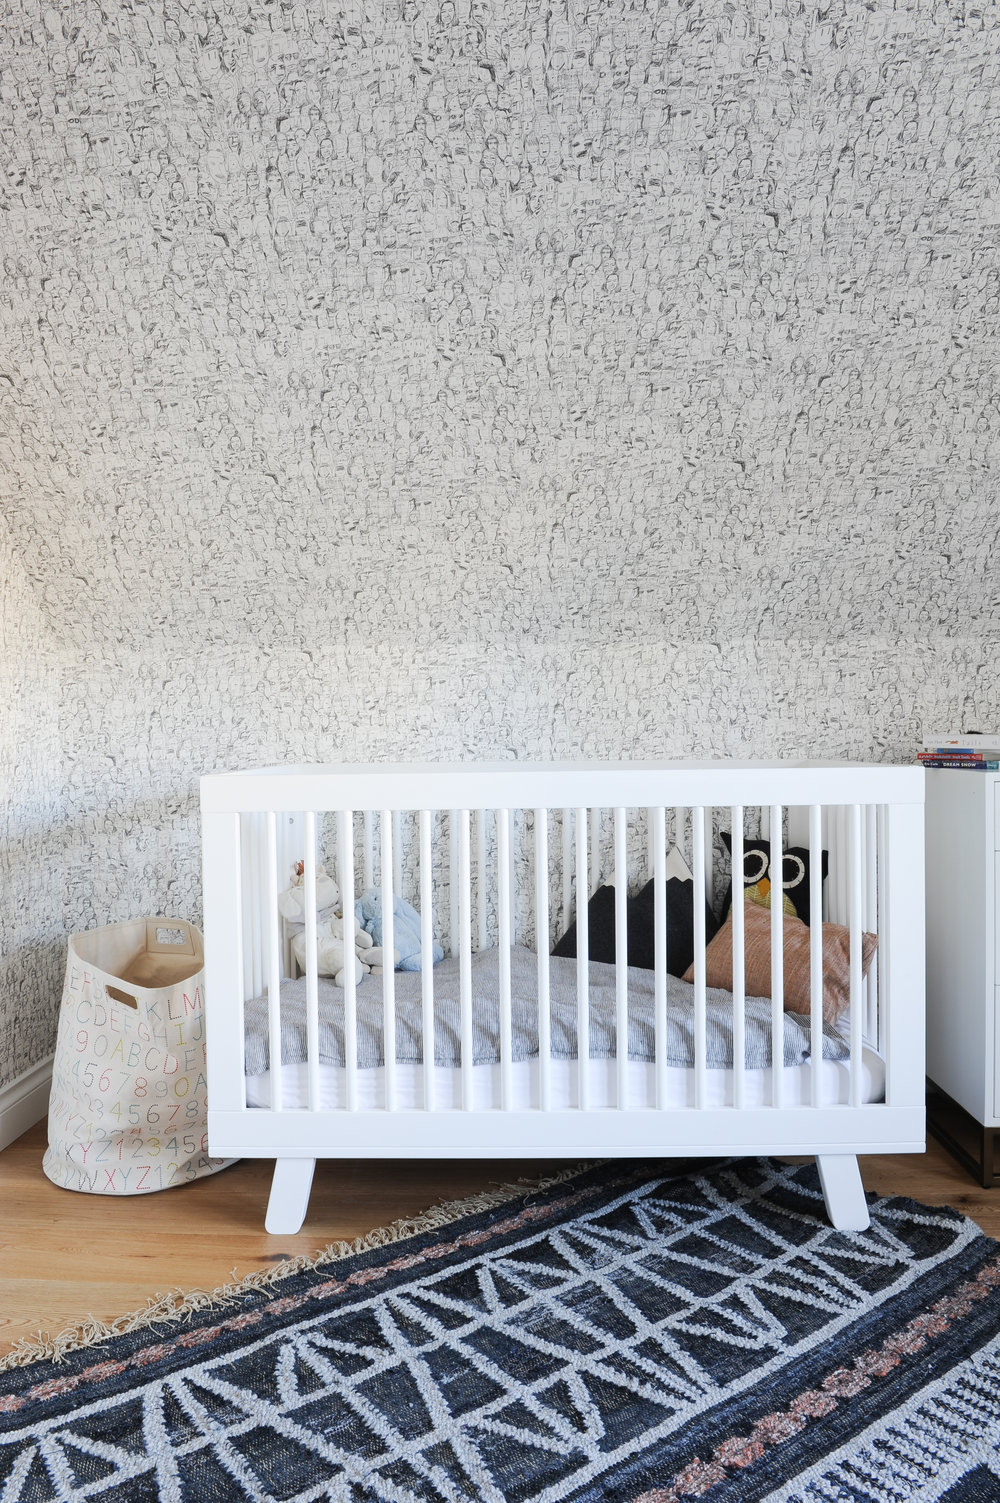 A white crib sits in a children's room, decorated with speckled blue and white walls and large blue area rug.